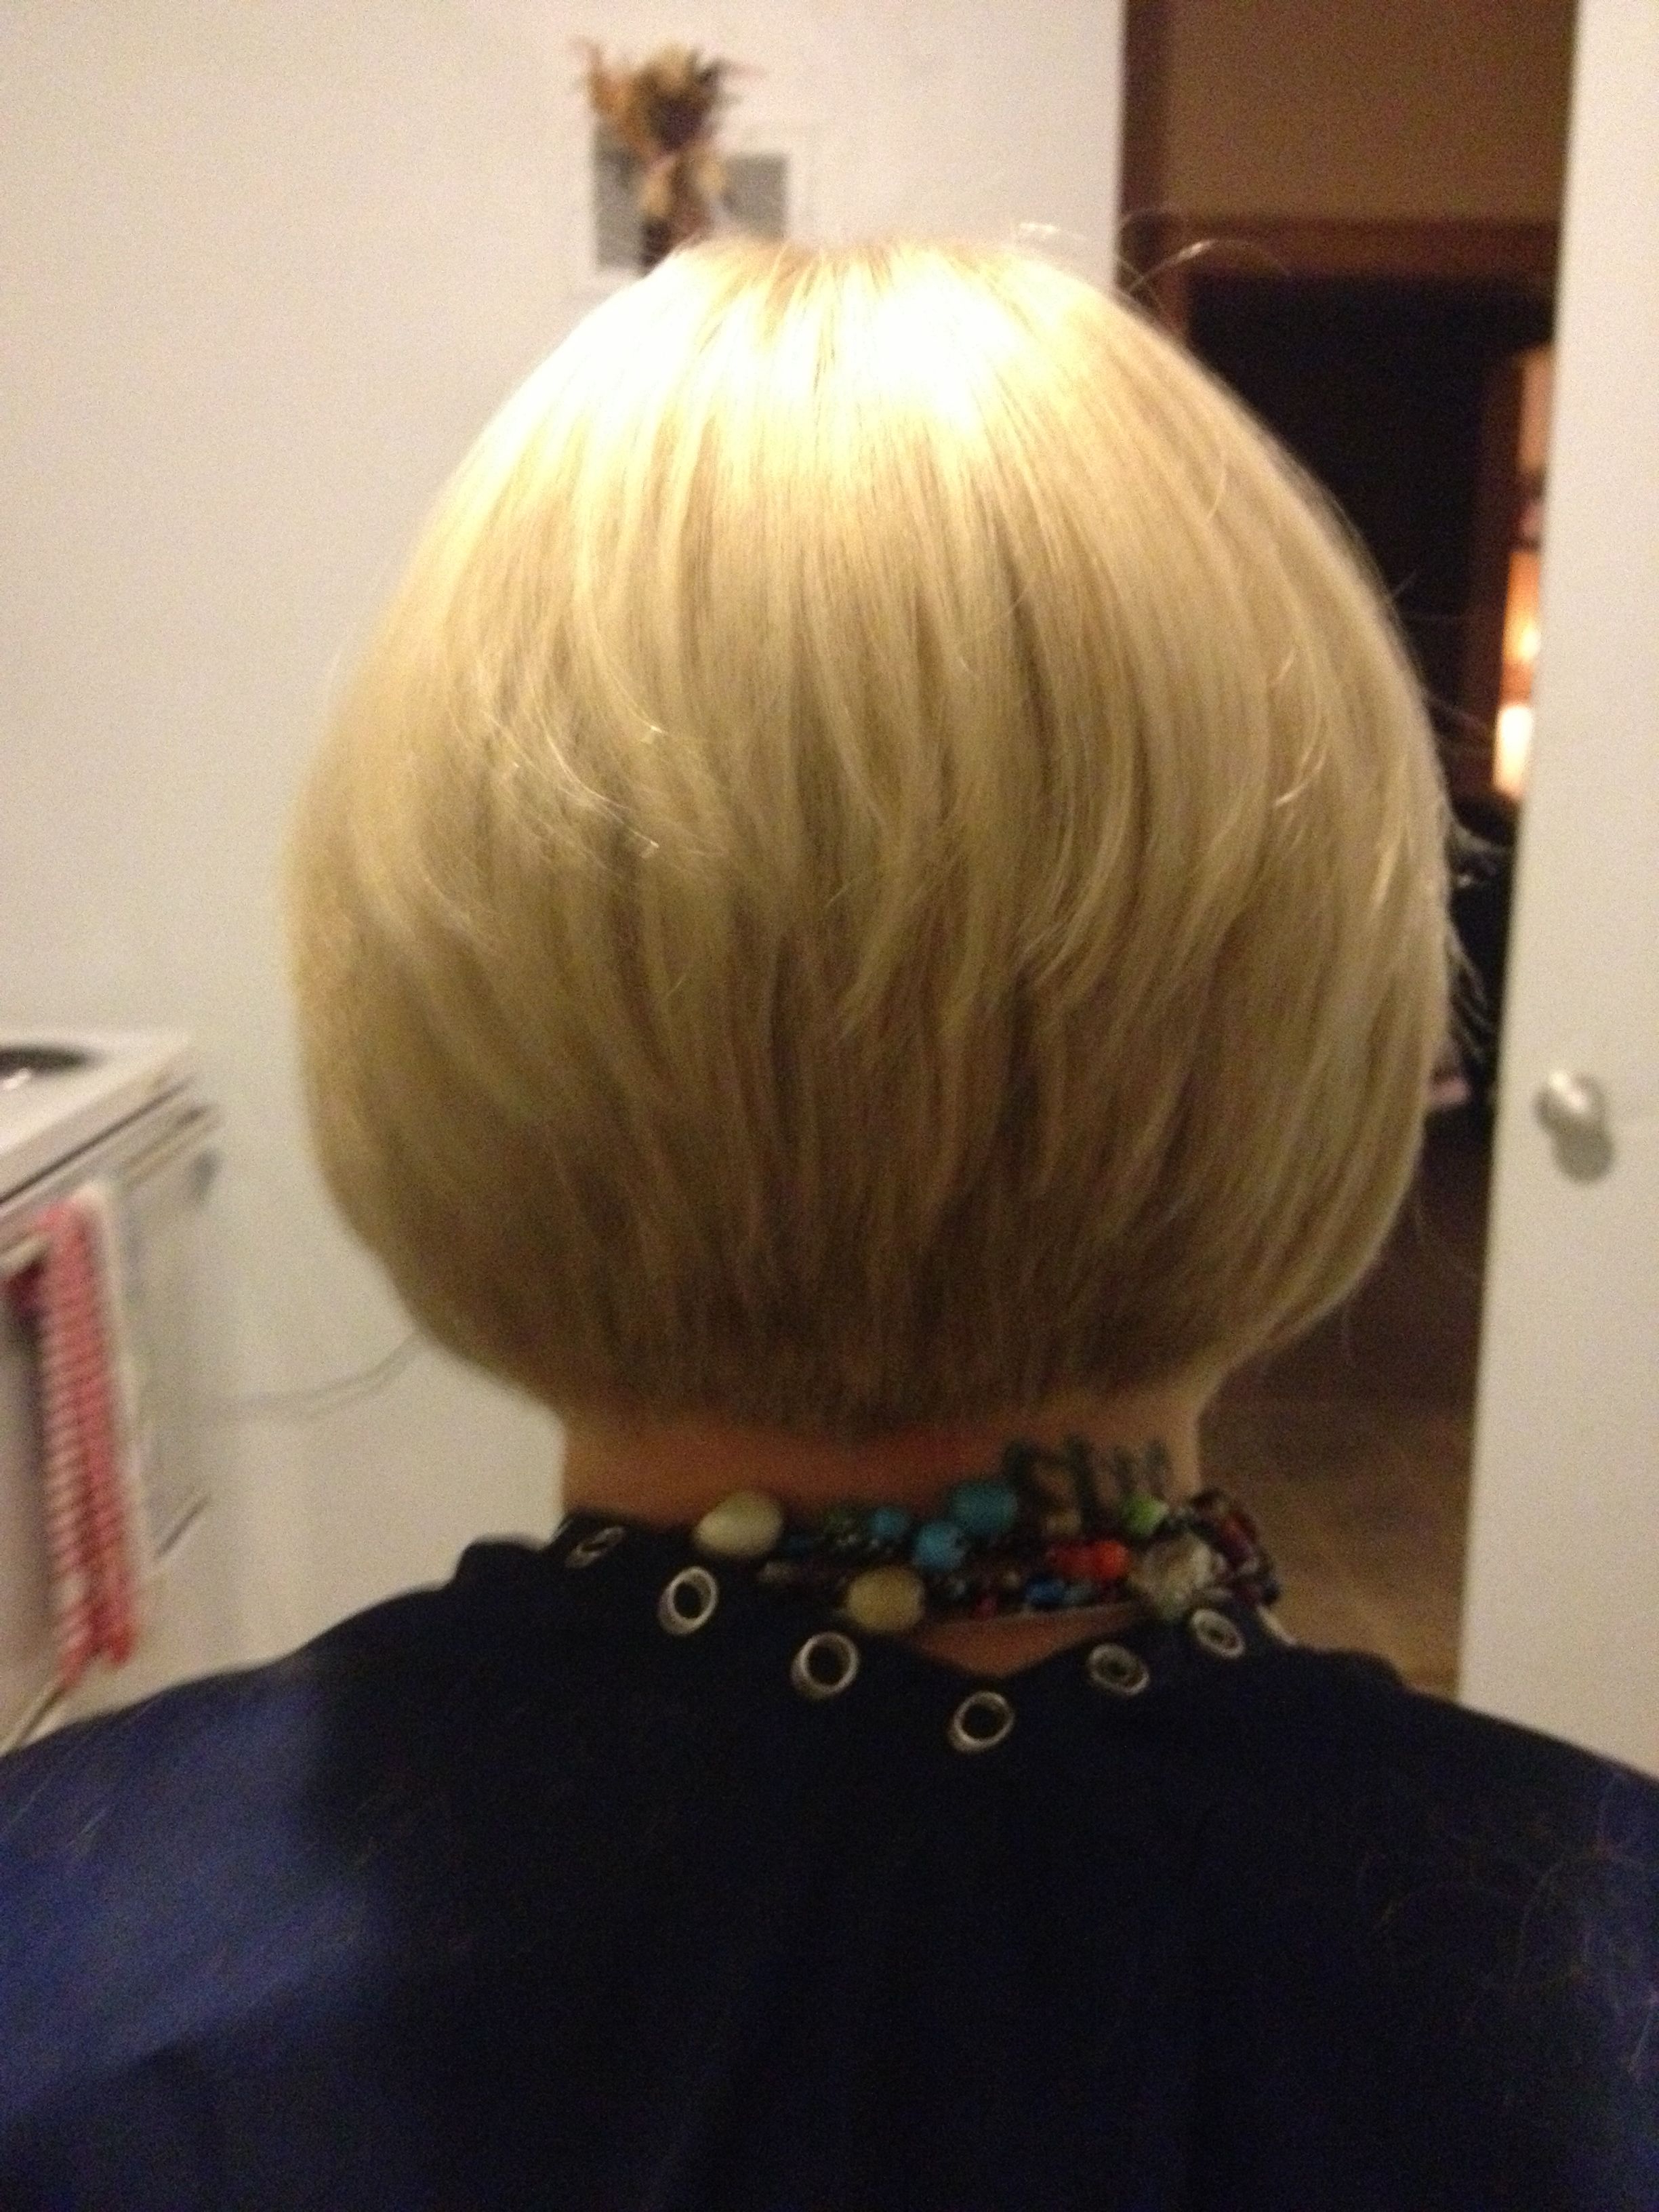 Short Hair Tapered Bob (Back View) | Odds And Ends | Pinterest Regarding Short Bob Hairstyles With Tapered Back (View 12 of 20)